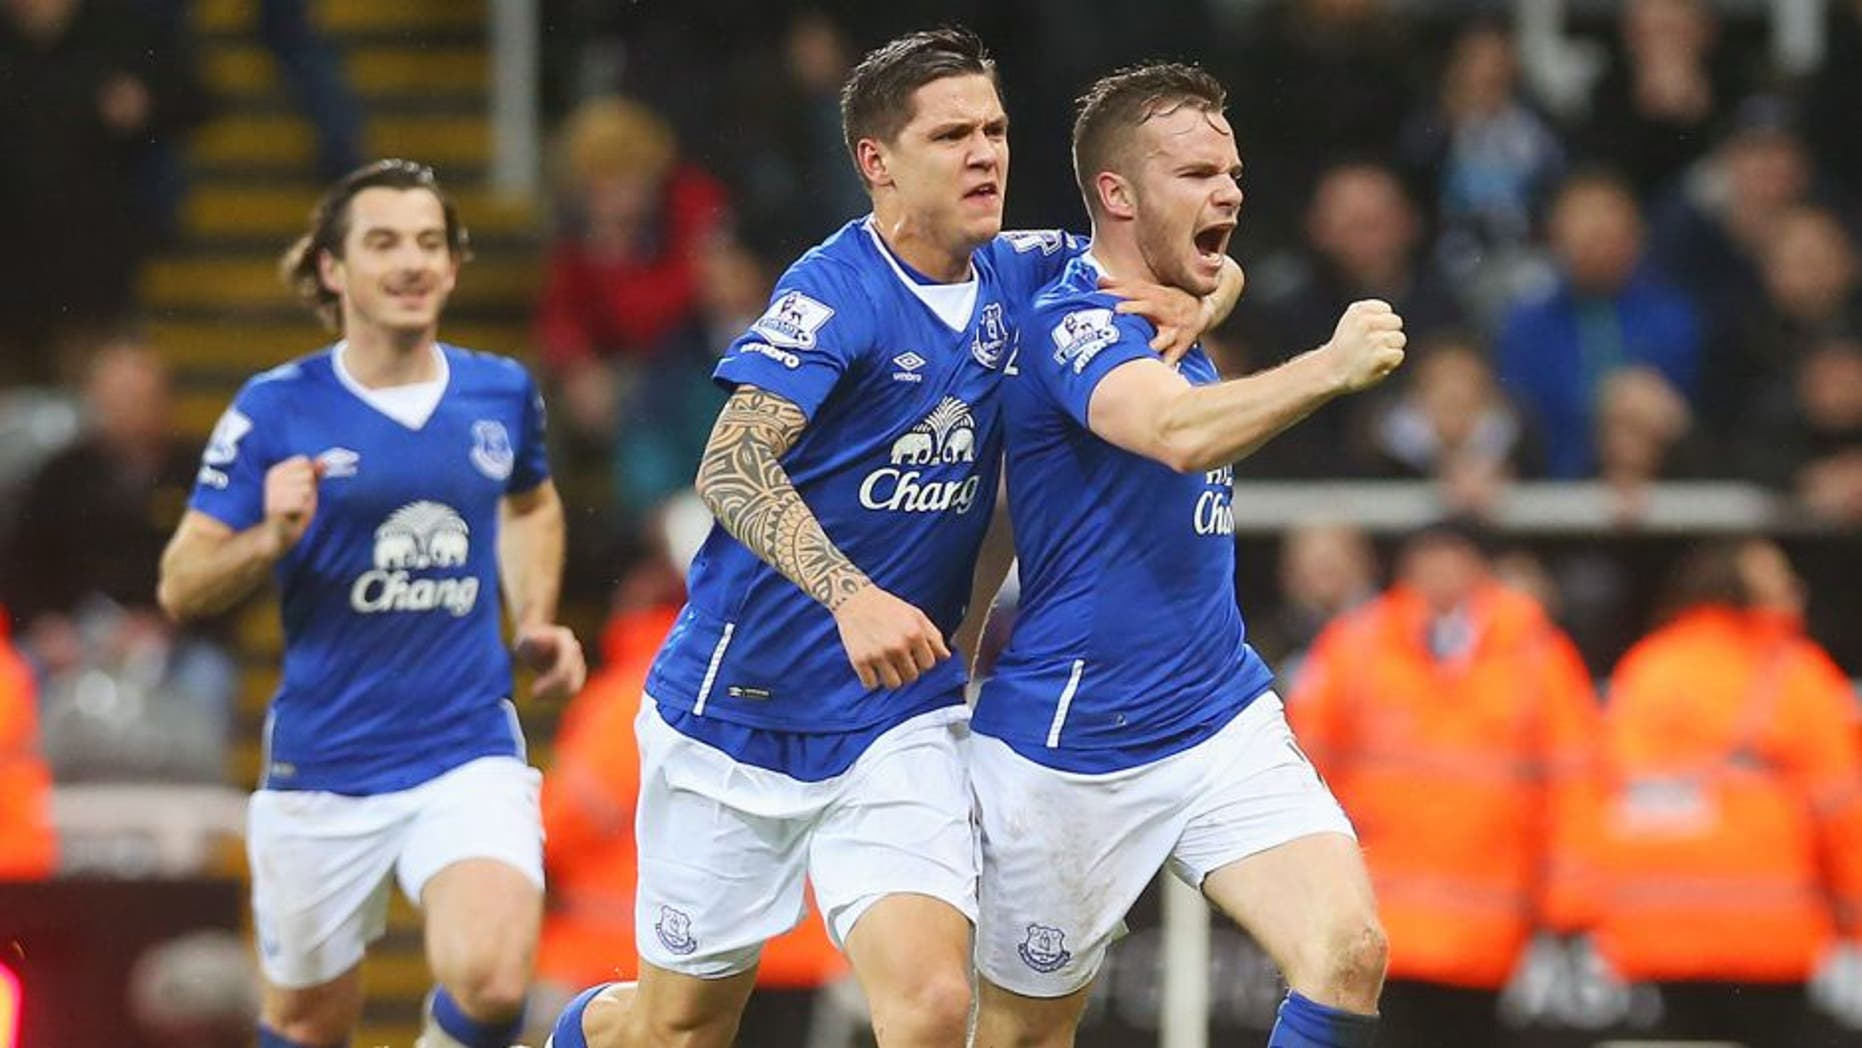 NEWCASTLE UPON TYNE, ENGLAND - DECEMBER 26: Tom Cleverley of Everton (R) celebrates with team mate Muhamed Besic as he scores their first goal during the Barclays Premier League match between Newcastle United and Everton at St James' Park on December 26, 2015 in Newcastle upon Tyne, England. (Photo by Ian MacNicol/Getty Images)